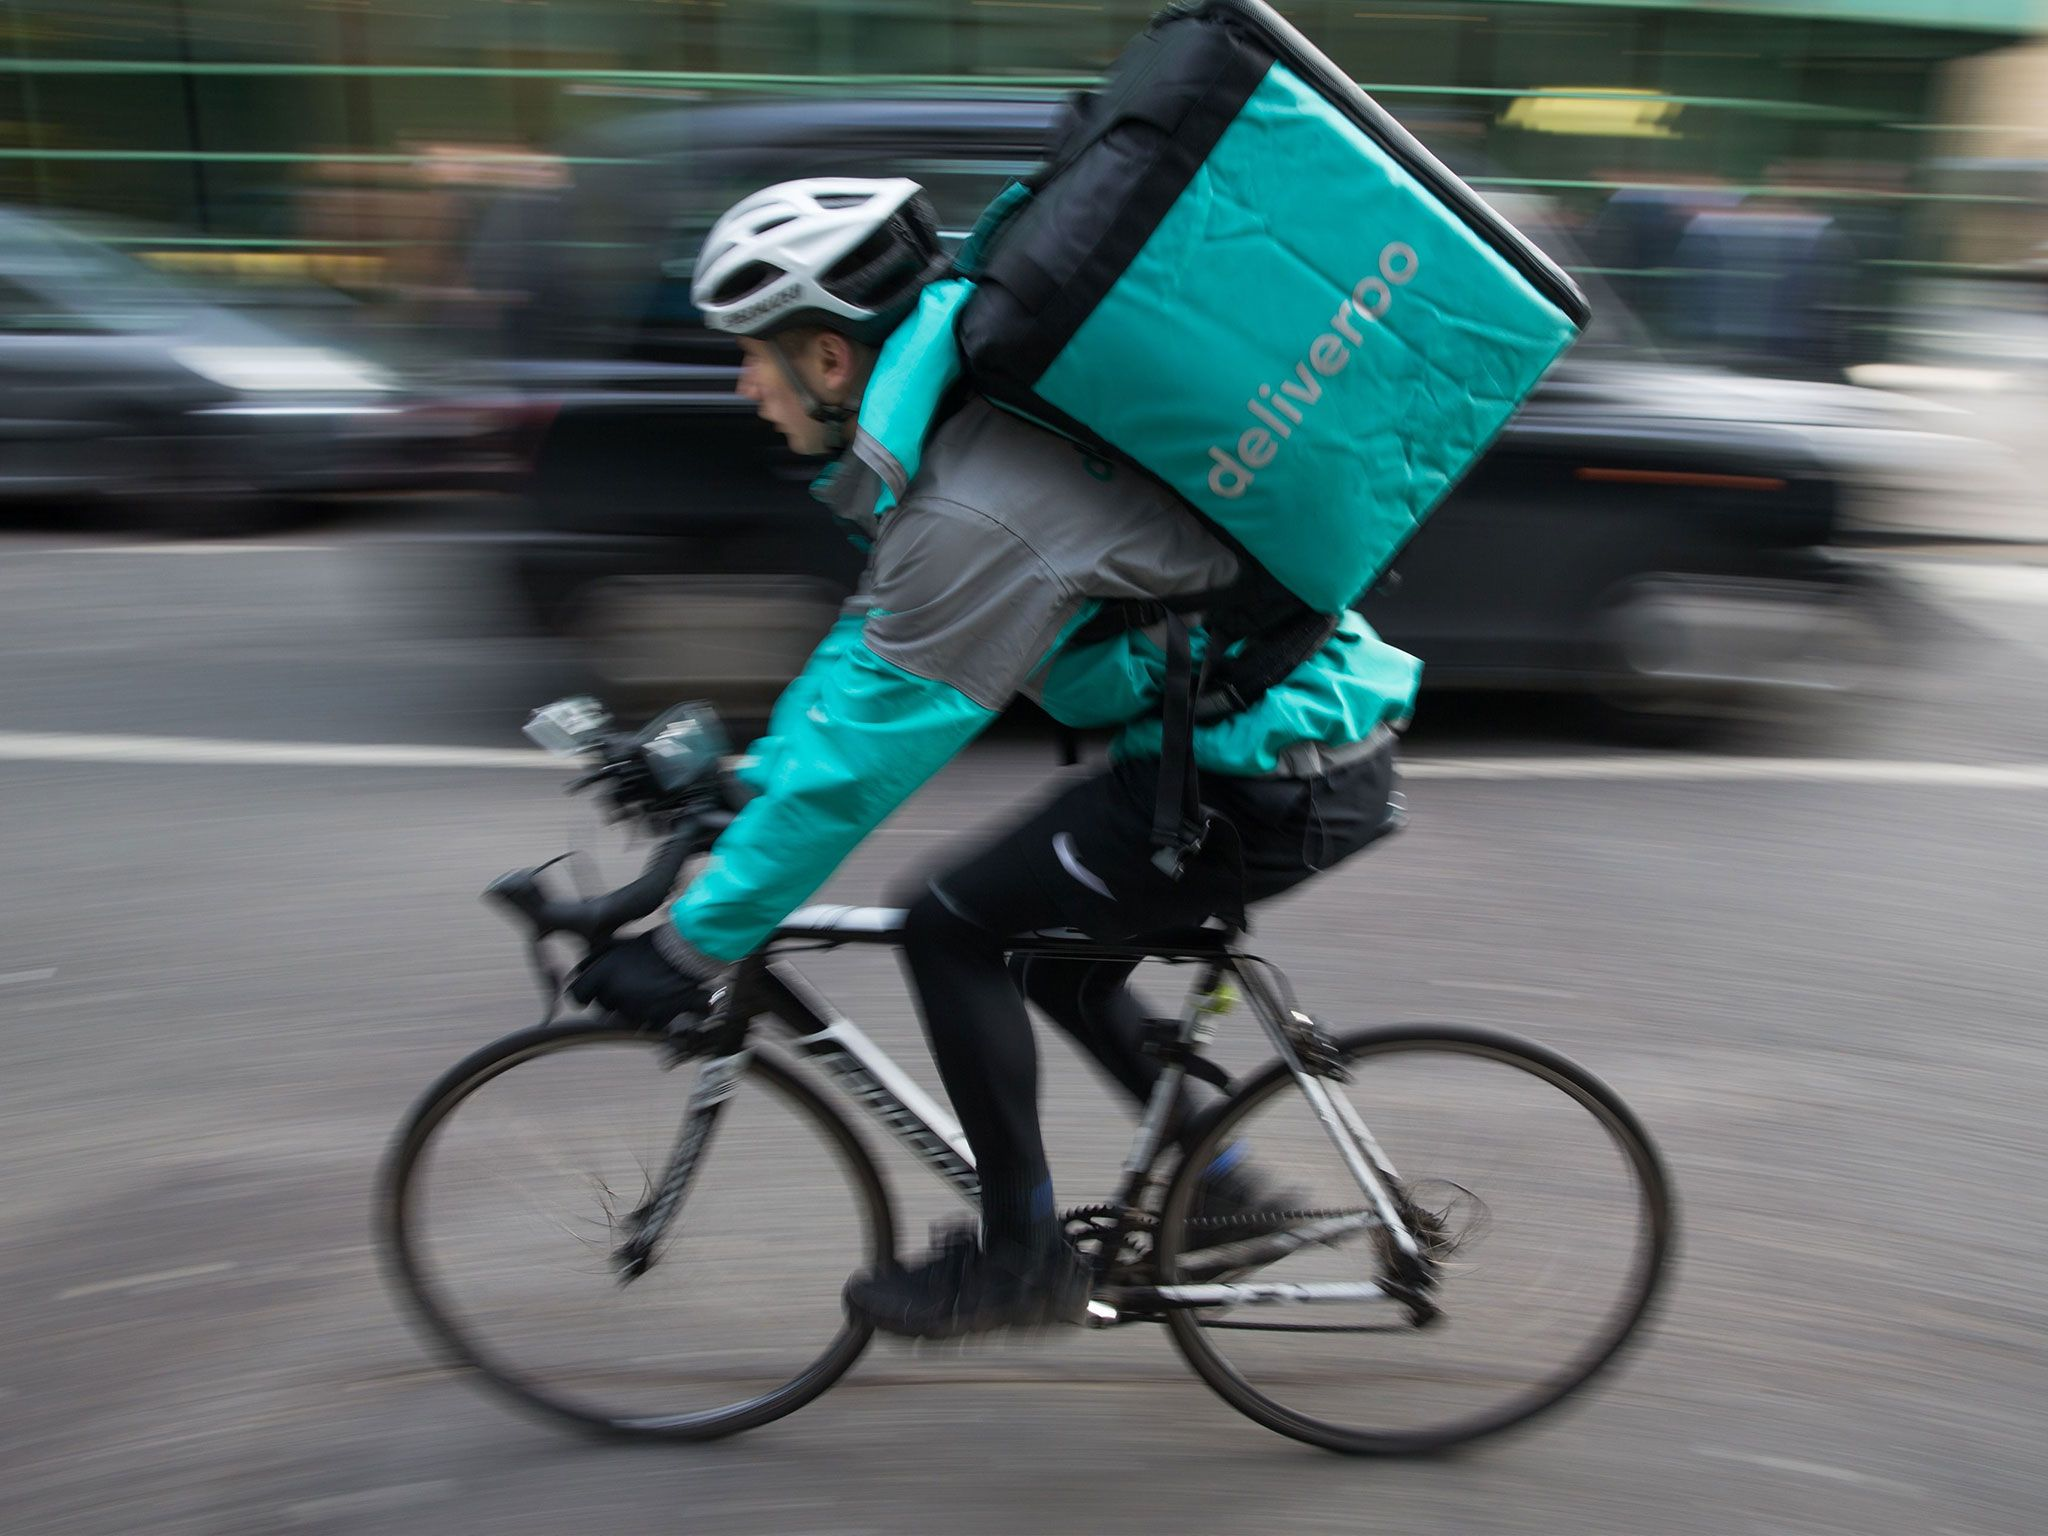 Deliveroo Announces 250 New Technology Jobs In Uk As Expansion